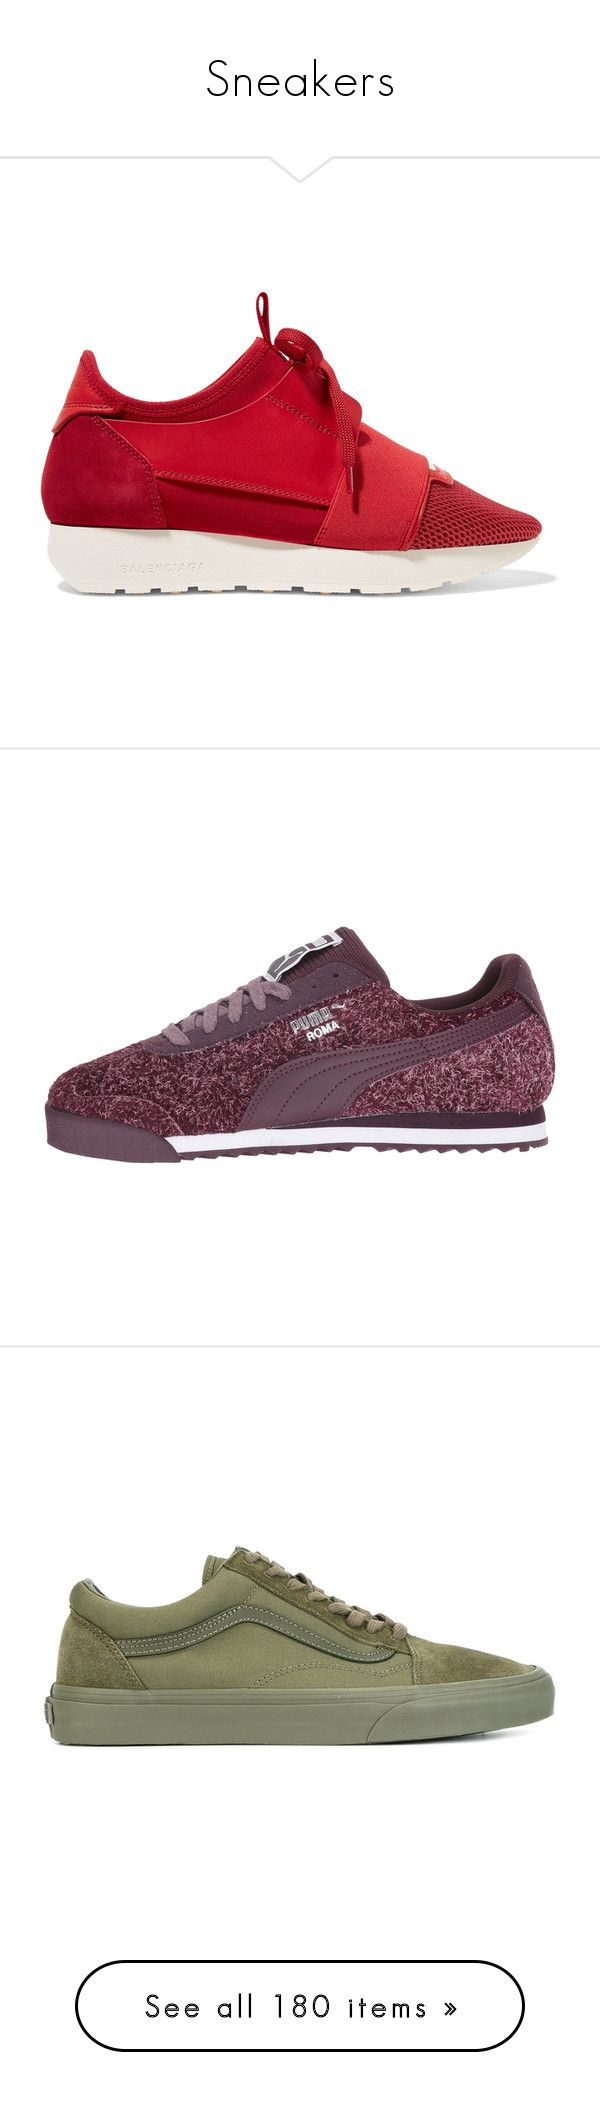 """""""Sneakers"""" by deborahsauveur ❤ liked on Polyvore featuring shoes, sneakers, claret, balenciaga trainers, balenciaga shoes, rubber sole shoes, lace up shoes, leather lace up sneakers, puma footwear and round cap"""